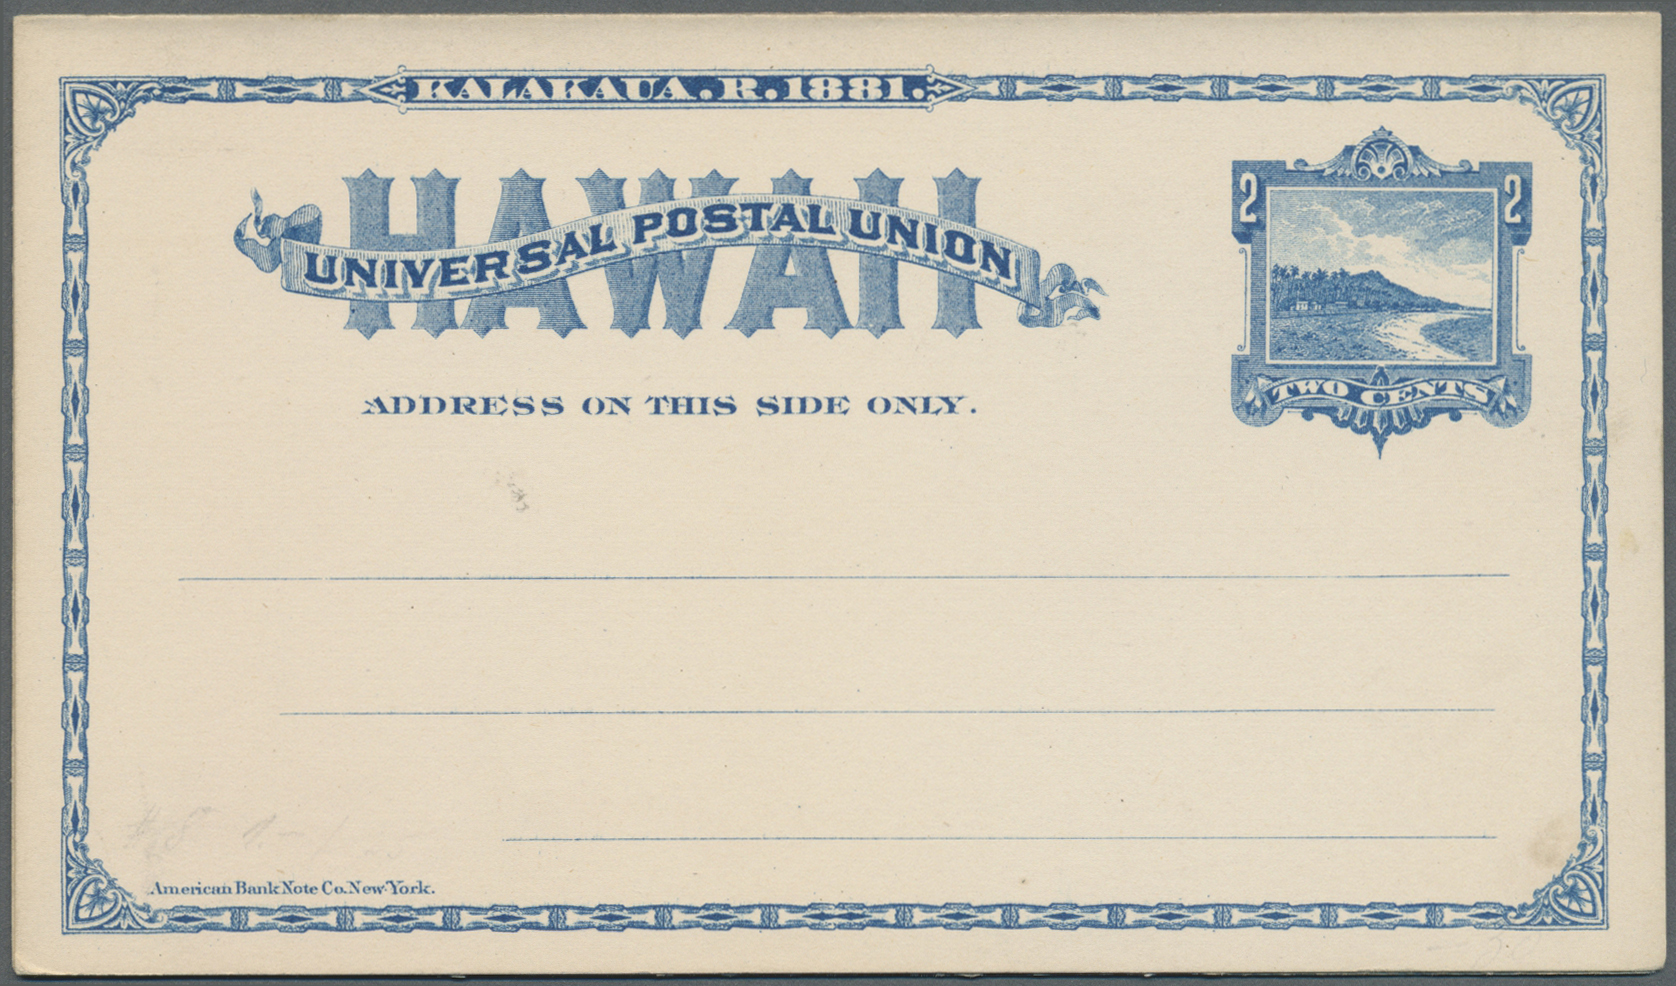 Lot 13844 - Hawaii - Ganzsachen  -  Auktionshaus Christoph Gärtner GmbH & Co. KG Single lots Philately Overseas & Europe. Auction #39 Day 4